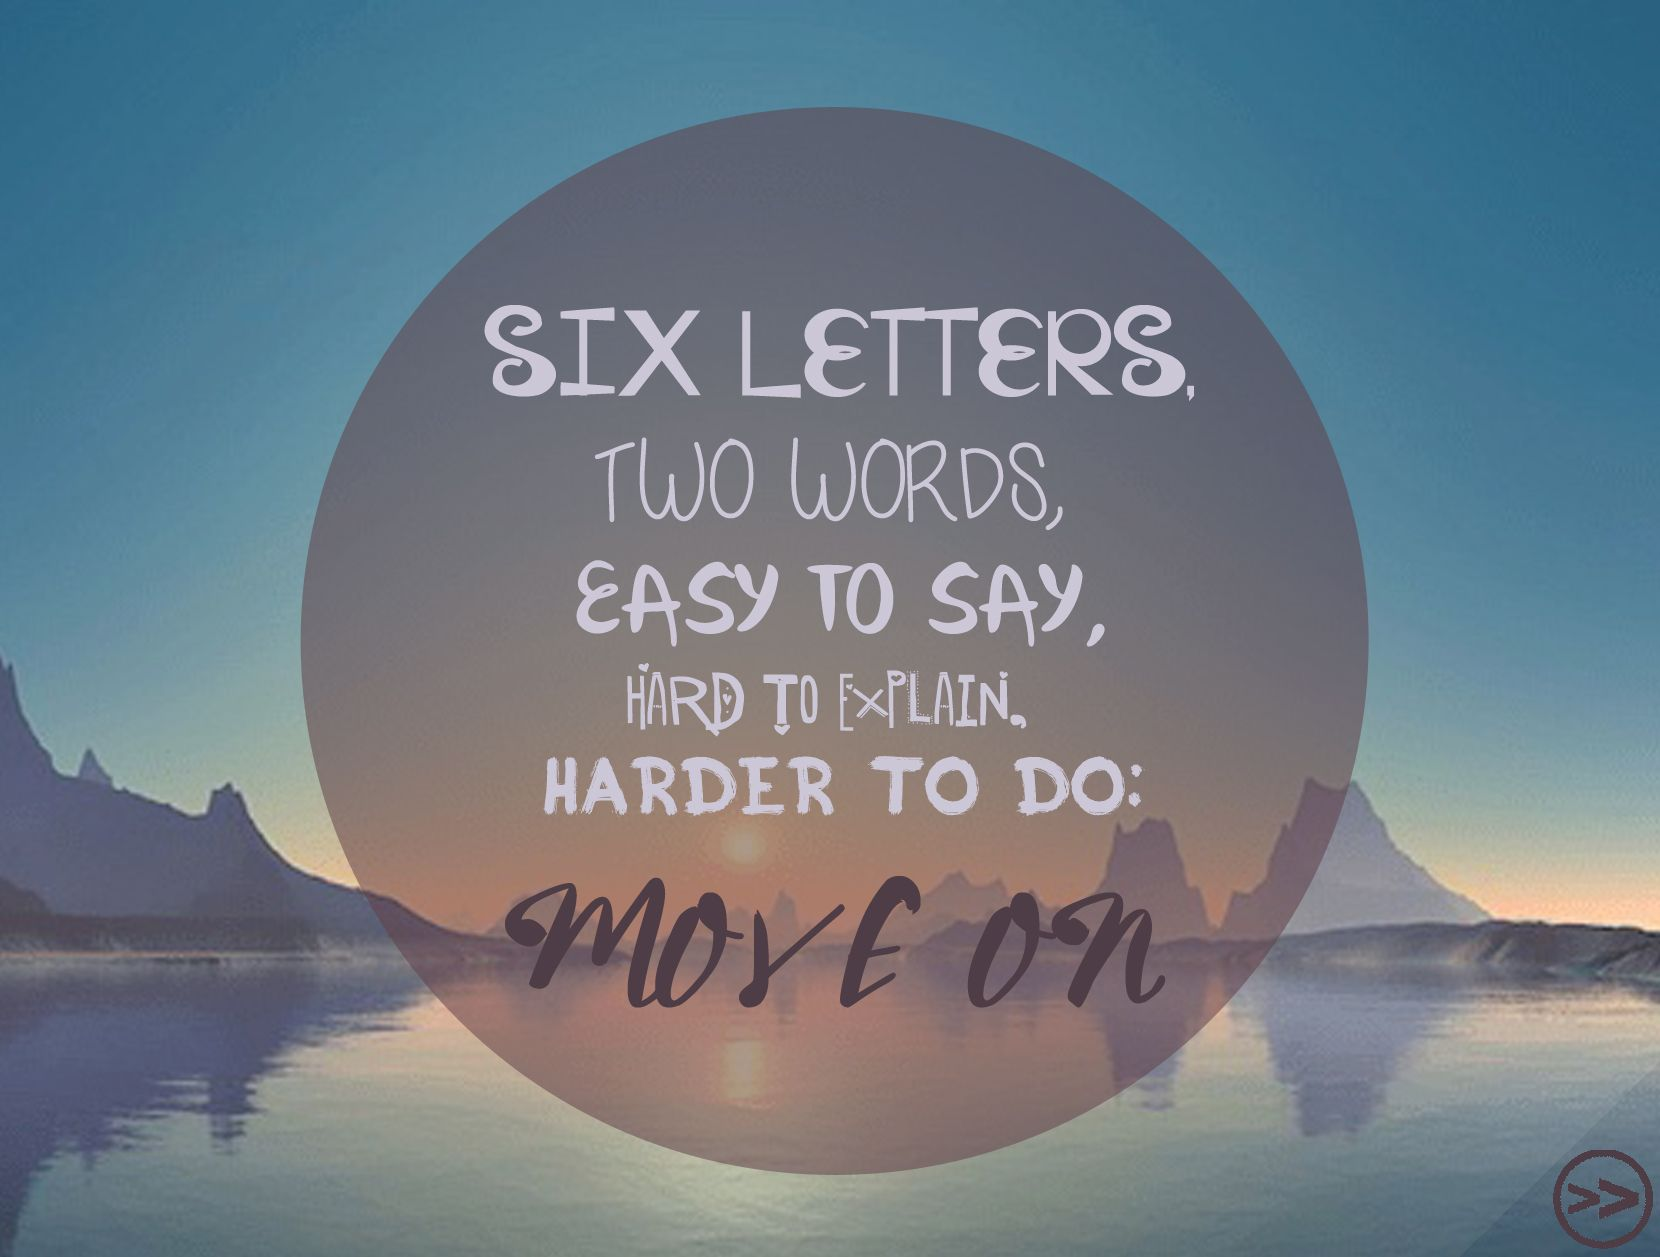 Six letters two words easy to say hard to explain harder to do